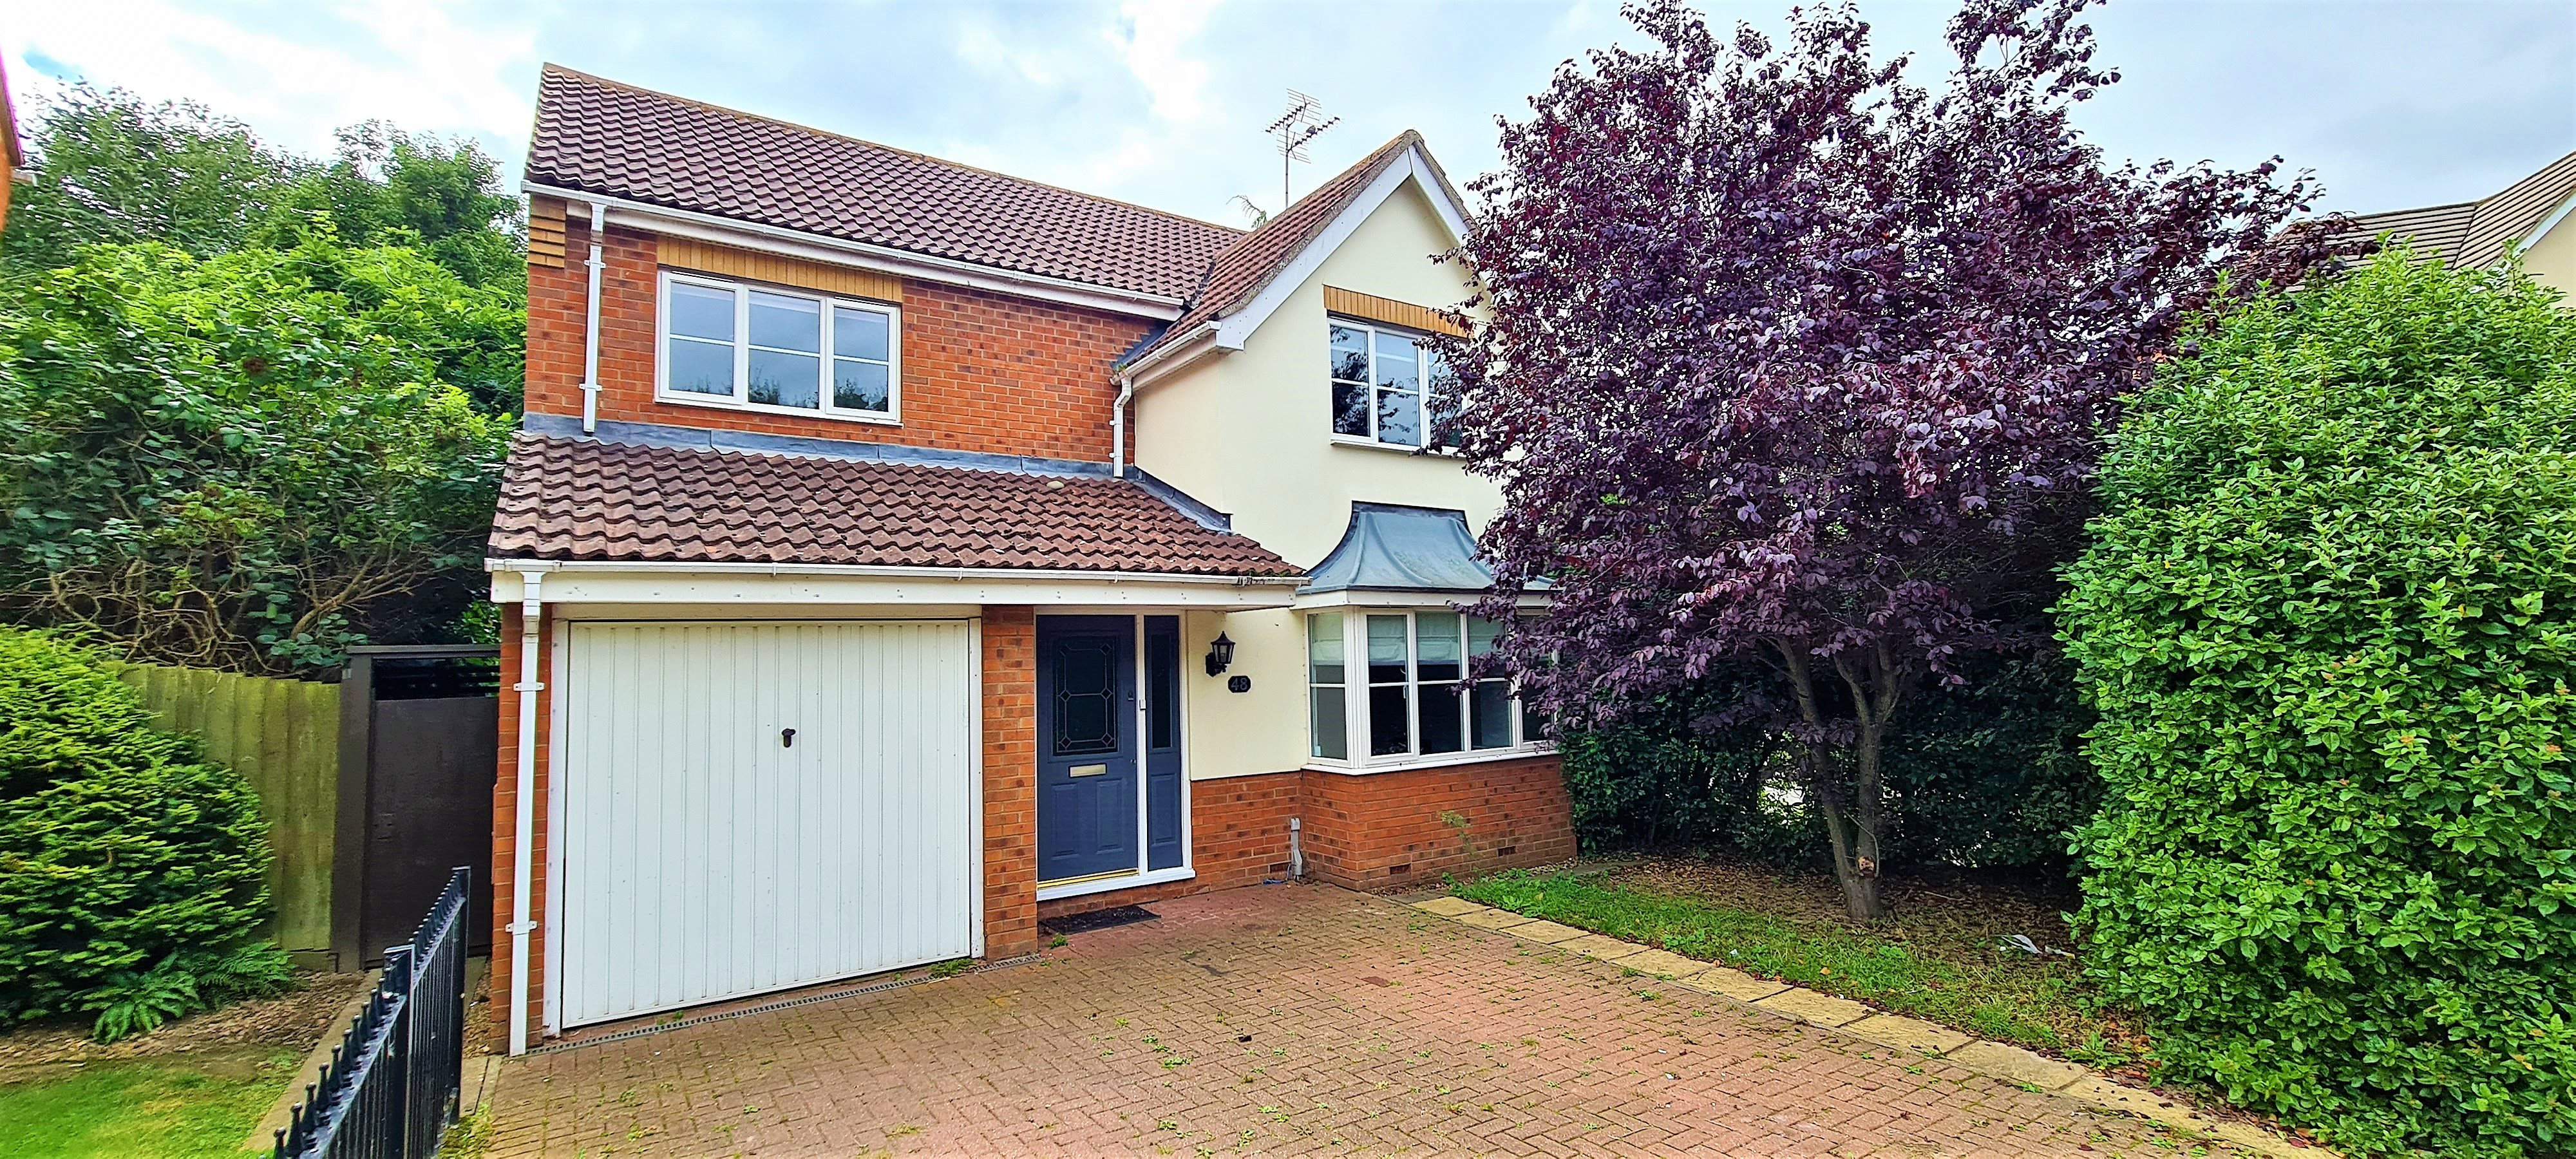 4 bed house to rent in Waterson Vale, Chelmsford - Property Image 1